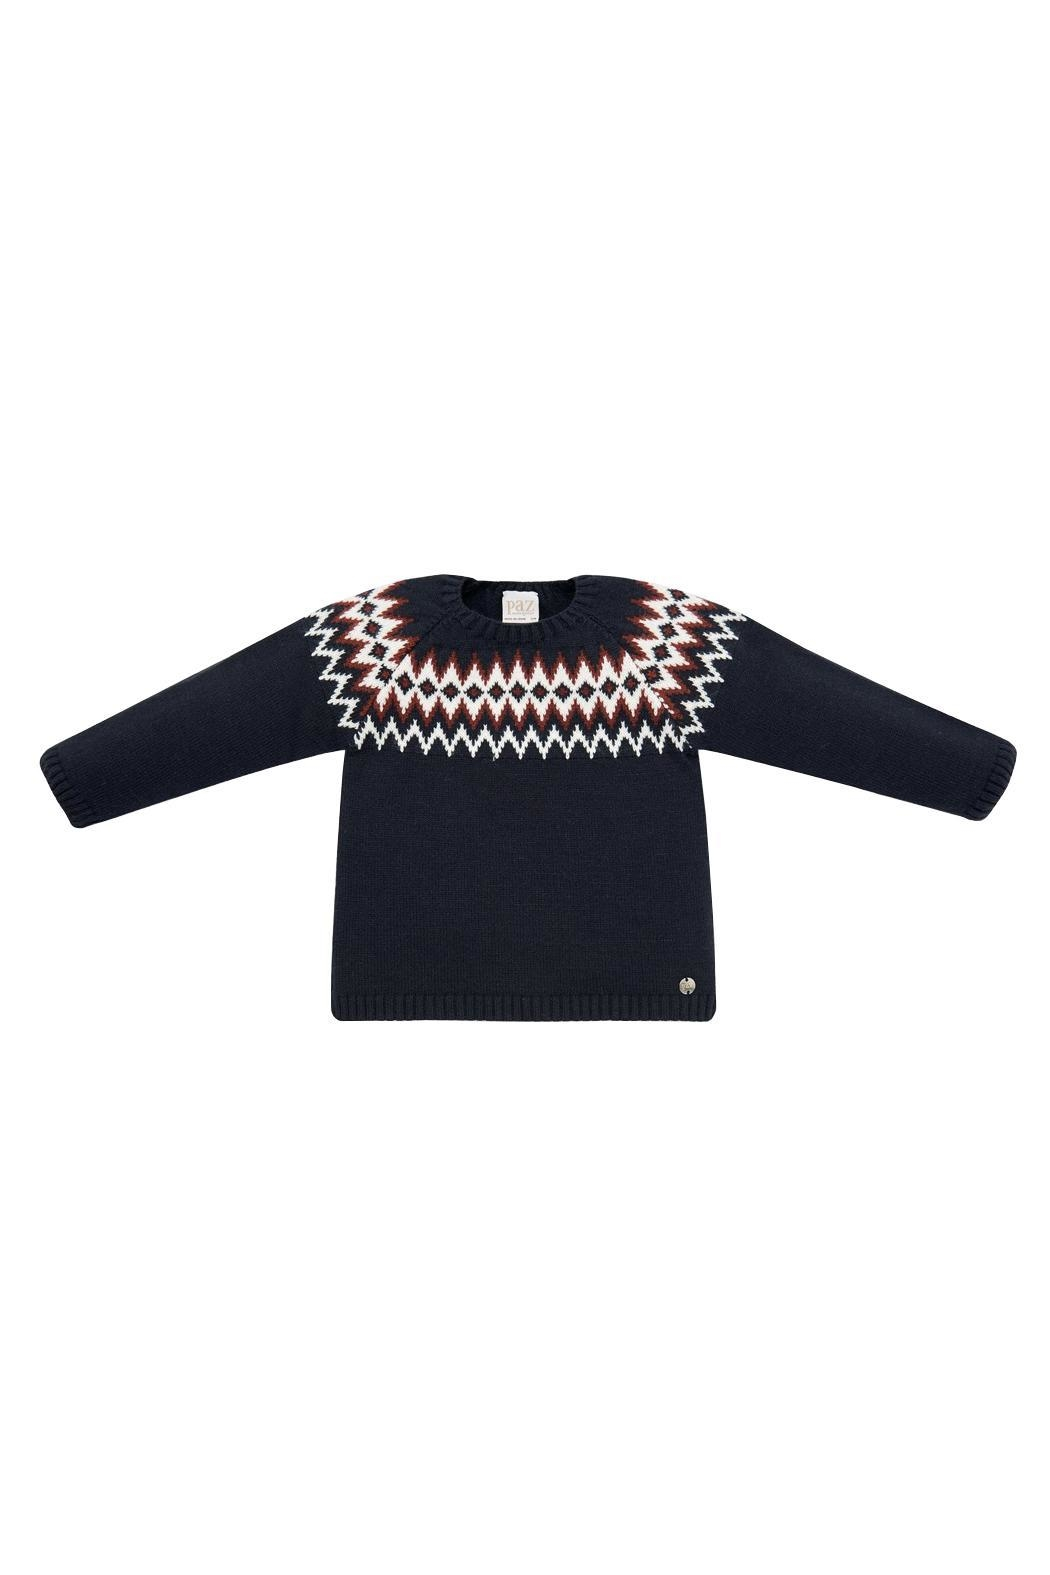 Paz Rodriguez Navy Sweater - Main Image